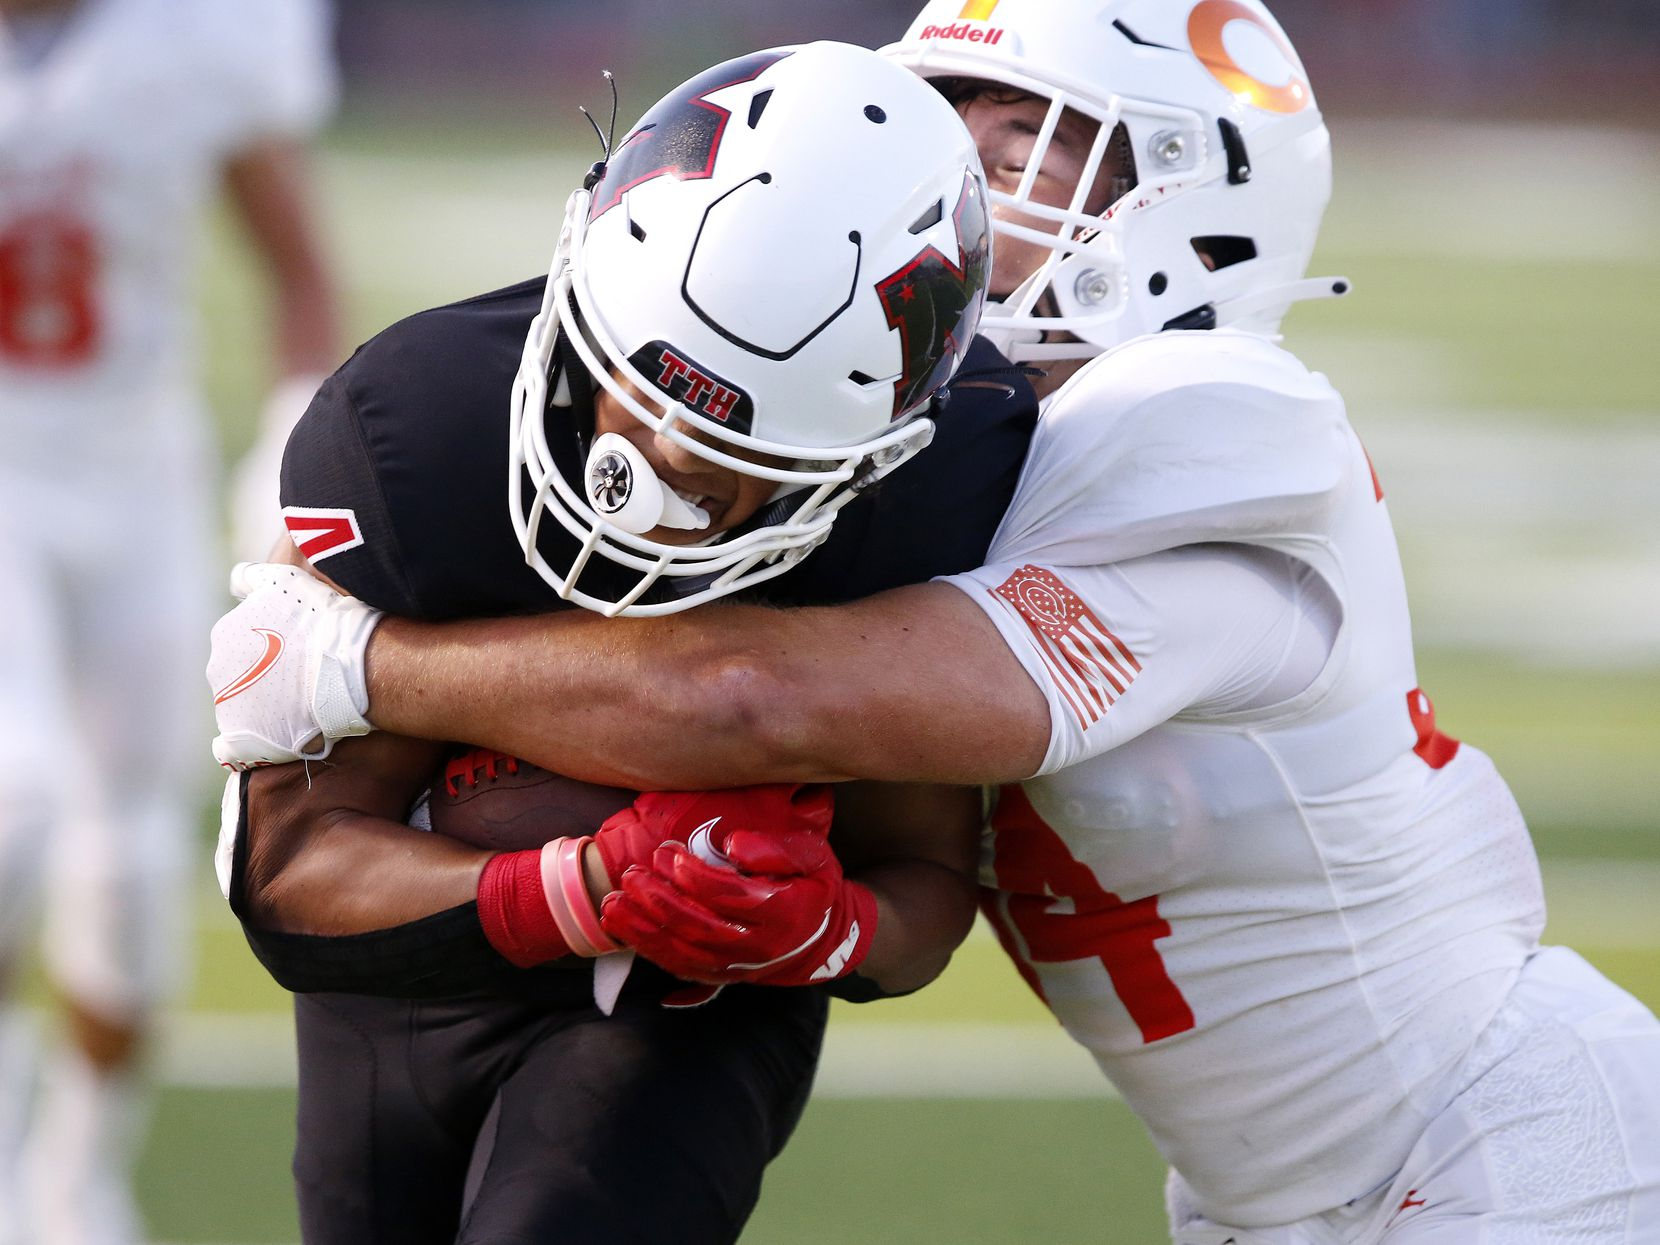 Melissa High School wide receiver Jayvon Smith (4) is tackled by Celina High School outside linebacker Zach Veverka (34) during the first half as Melissa High School hosted Celina High School at Cardinal Field in Melissa on Friday night, August 27, 2021. (Stewart F. House/Special Contributor)